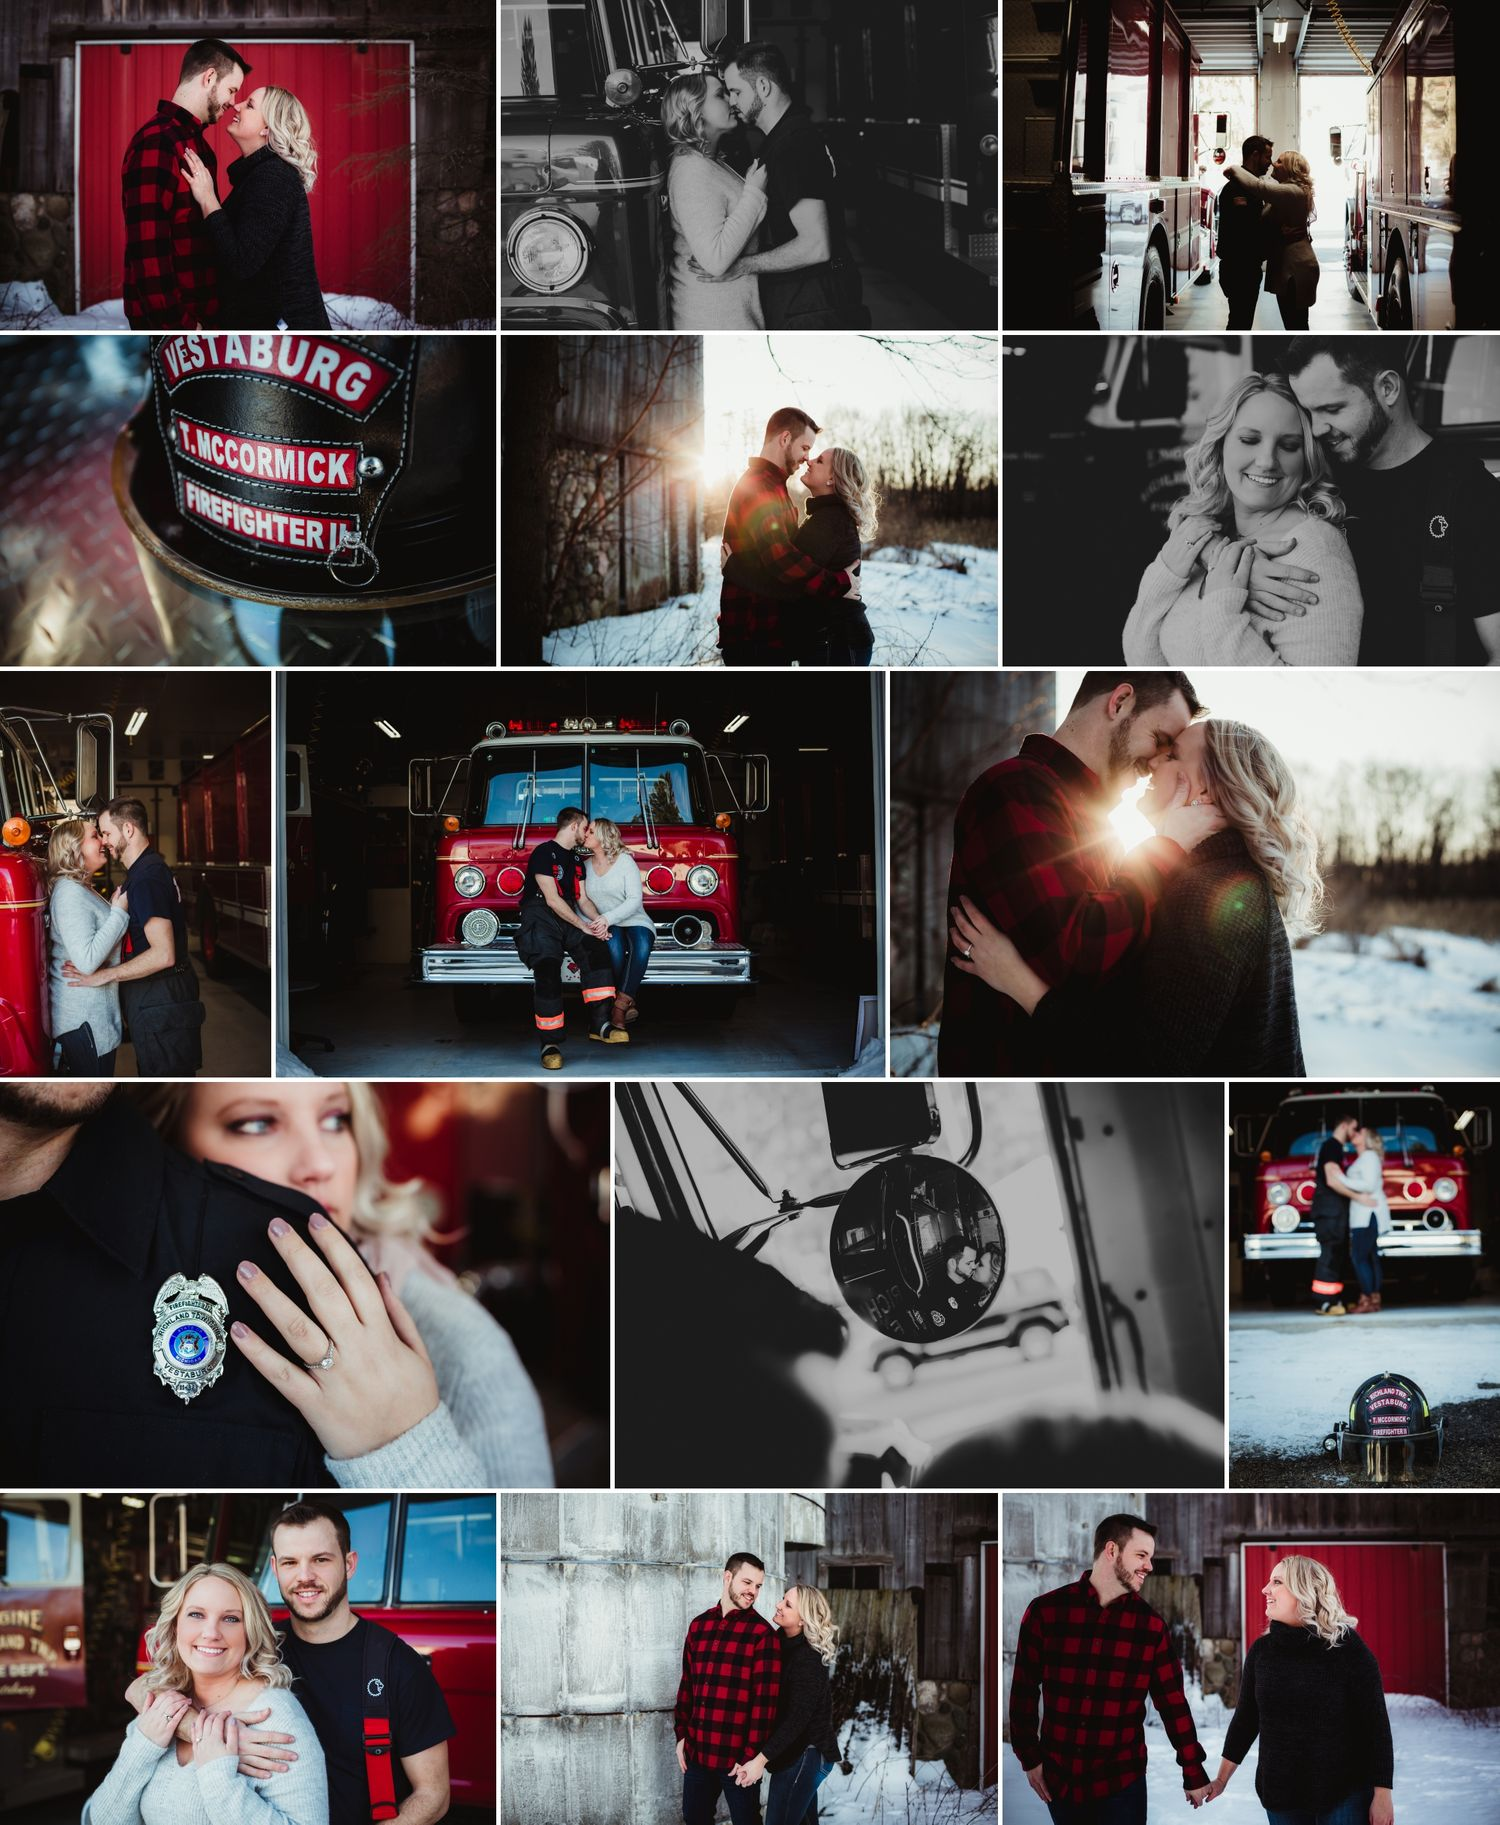 Collage of an engaged couple posing for photos. He is a firefighter and many are taken at the station.